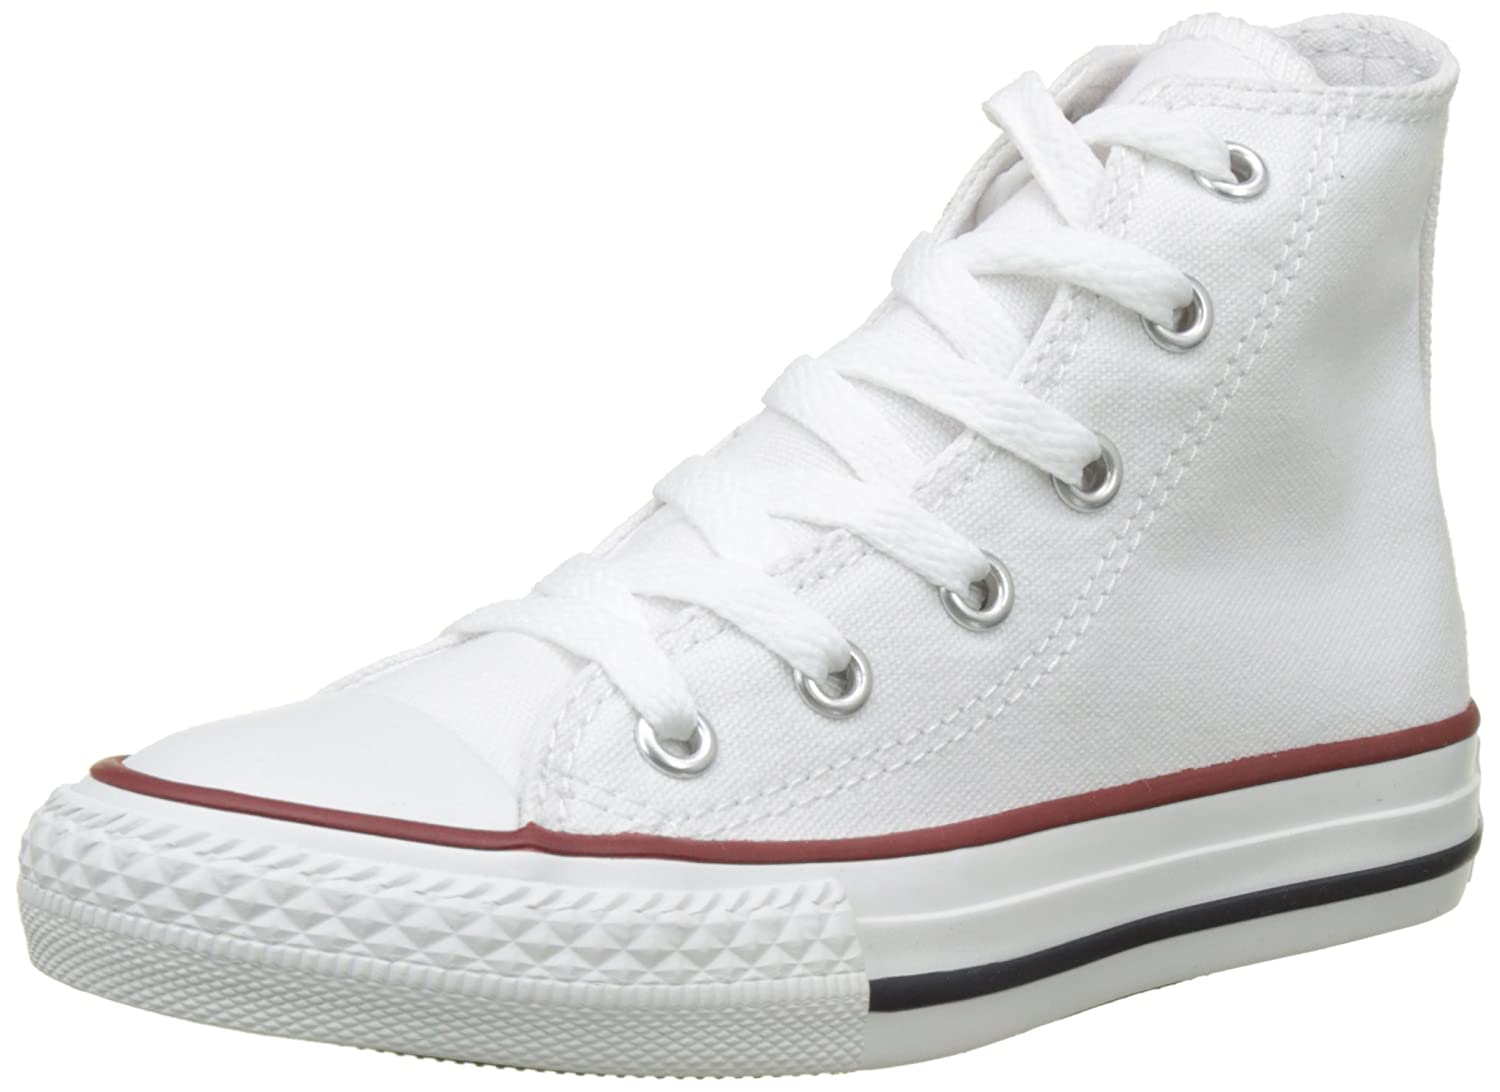 Converse All Star Hi Calzado optical white